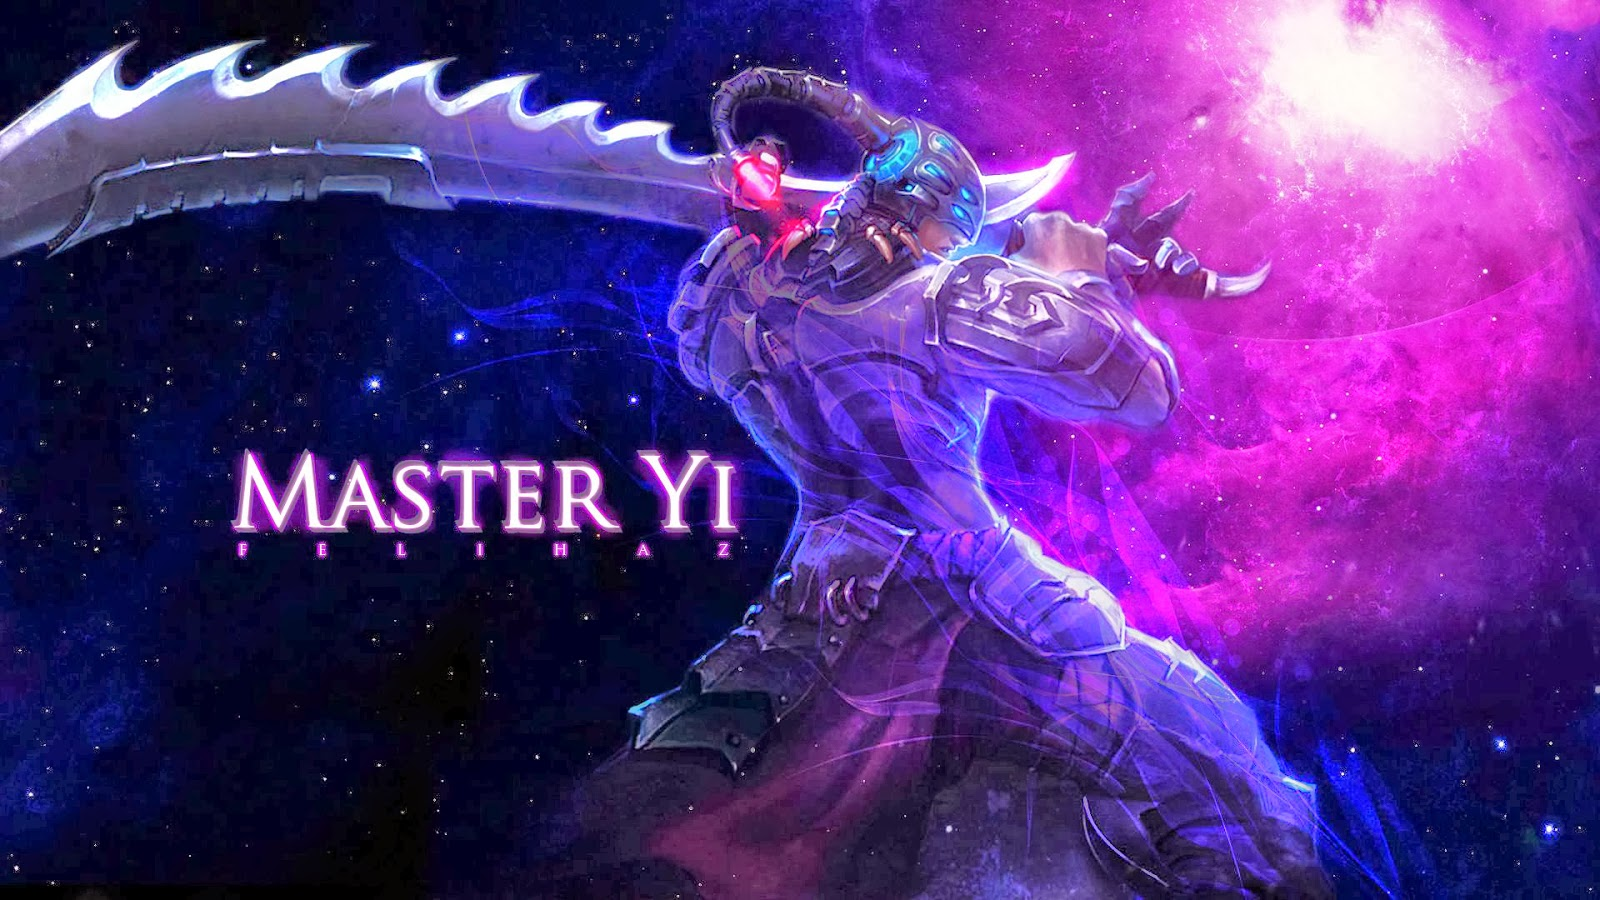 Master Yi League of Legends Wallpaper